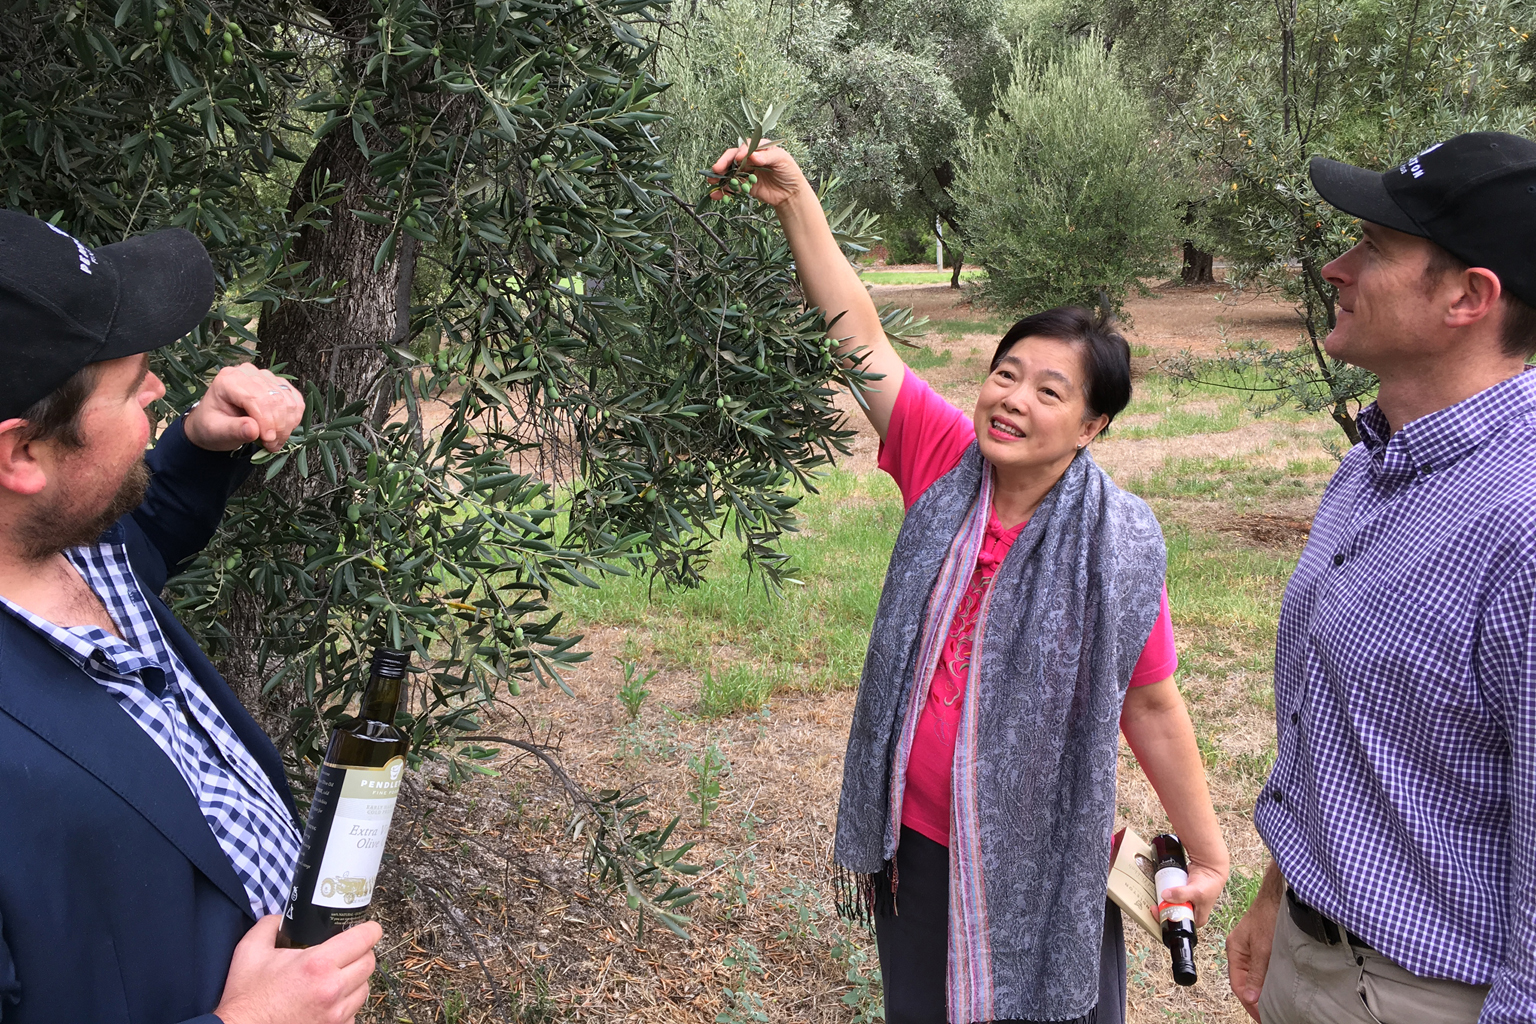 khgeok - Leong Geok Hoon (middle) with Clint Wylie (left) and Nick Whiting from Pendleton Fine Foods. They're standing next to an olive tree which is more than 100 years old. Geok retails many Pendleton products including fresh Lemon Pressed Extra Virgin Olive Oil on her website.##########khgeok##########COURTESY OF LEONG GEOK HOON